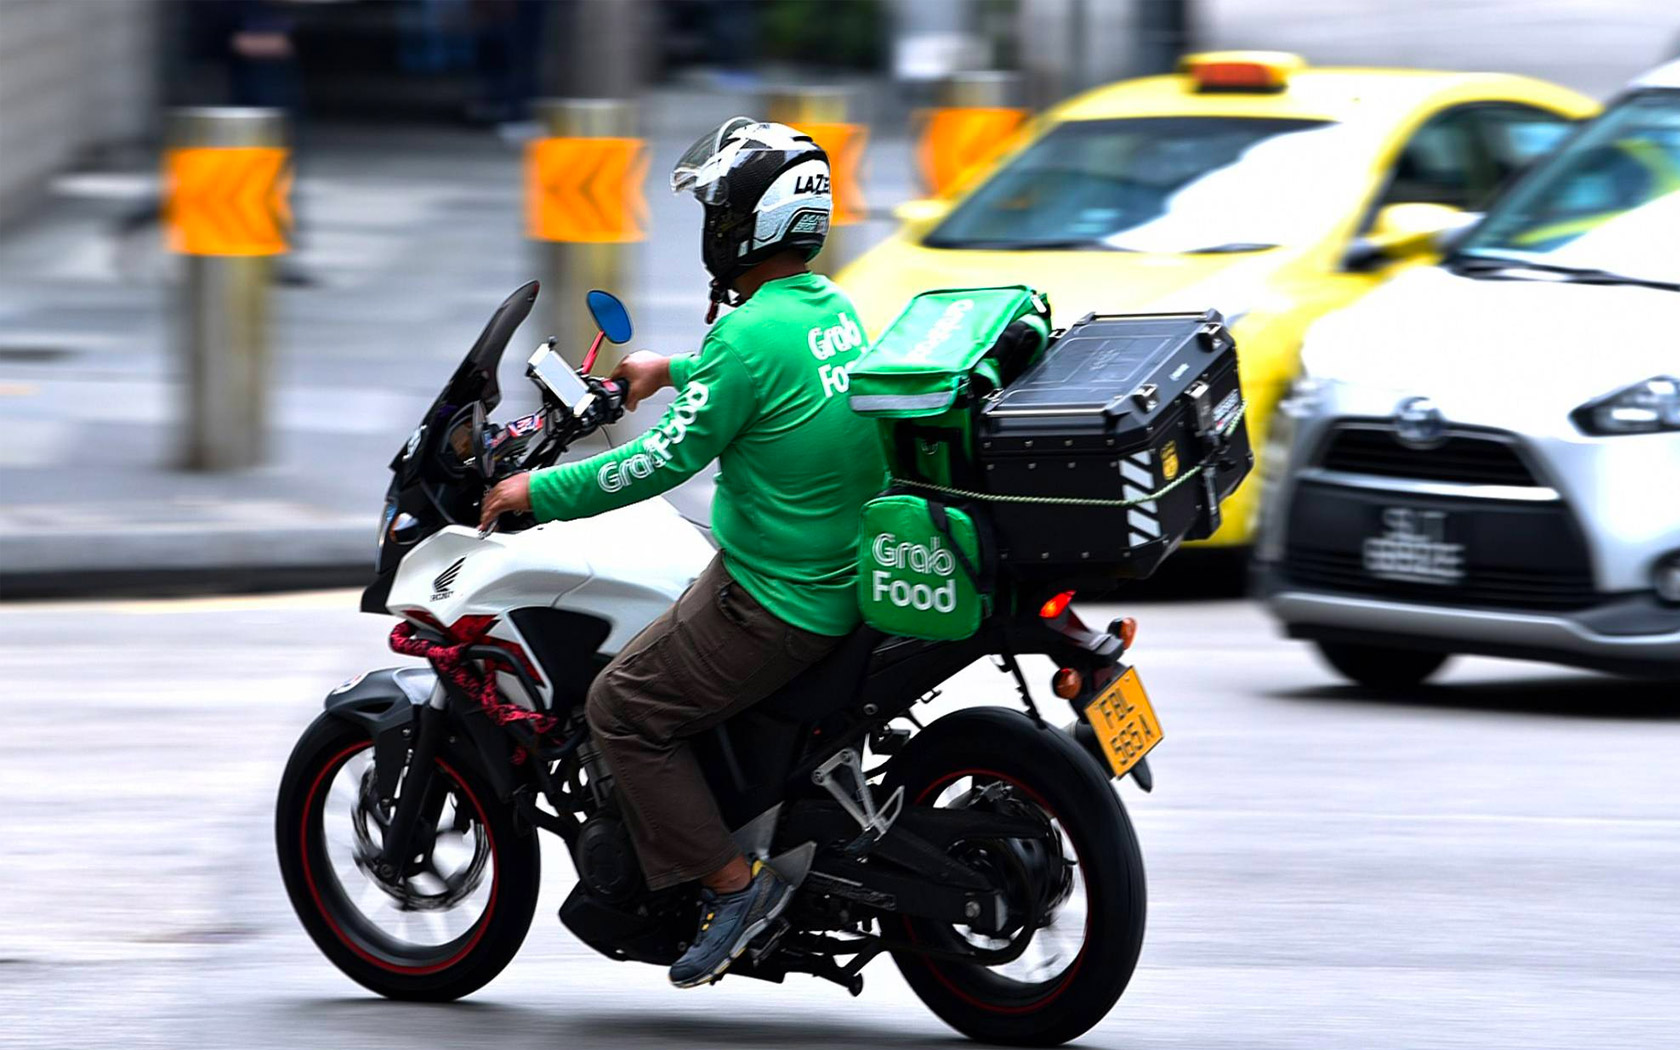 Delivery services in Southeast Asia see spike in business because of COVID-19 (Source: Channel News Asia, Photo: Mediacorp)